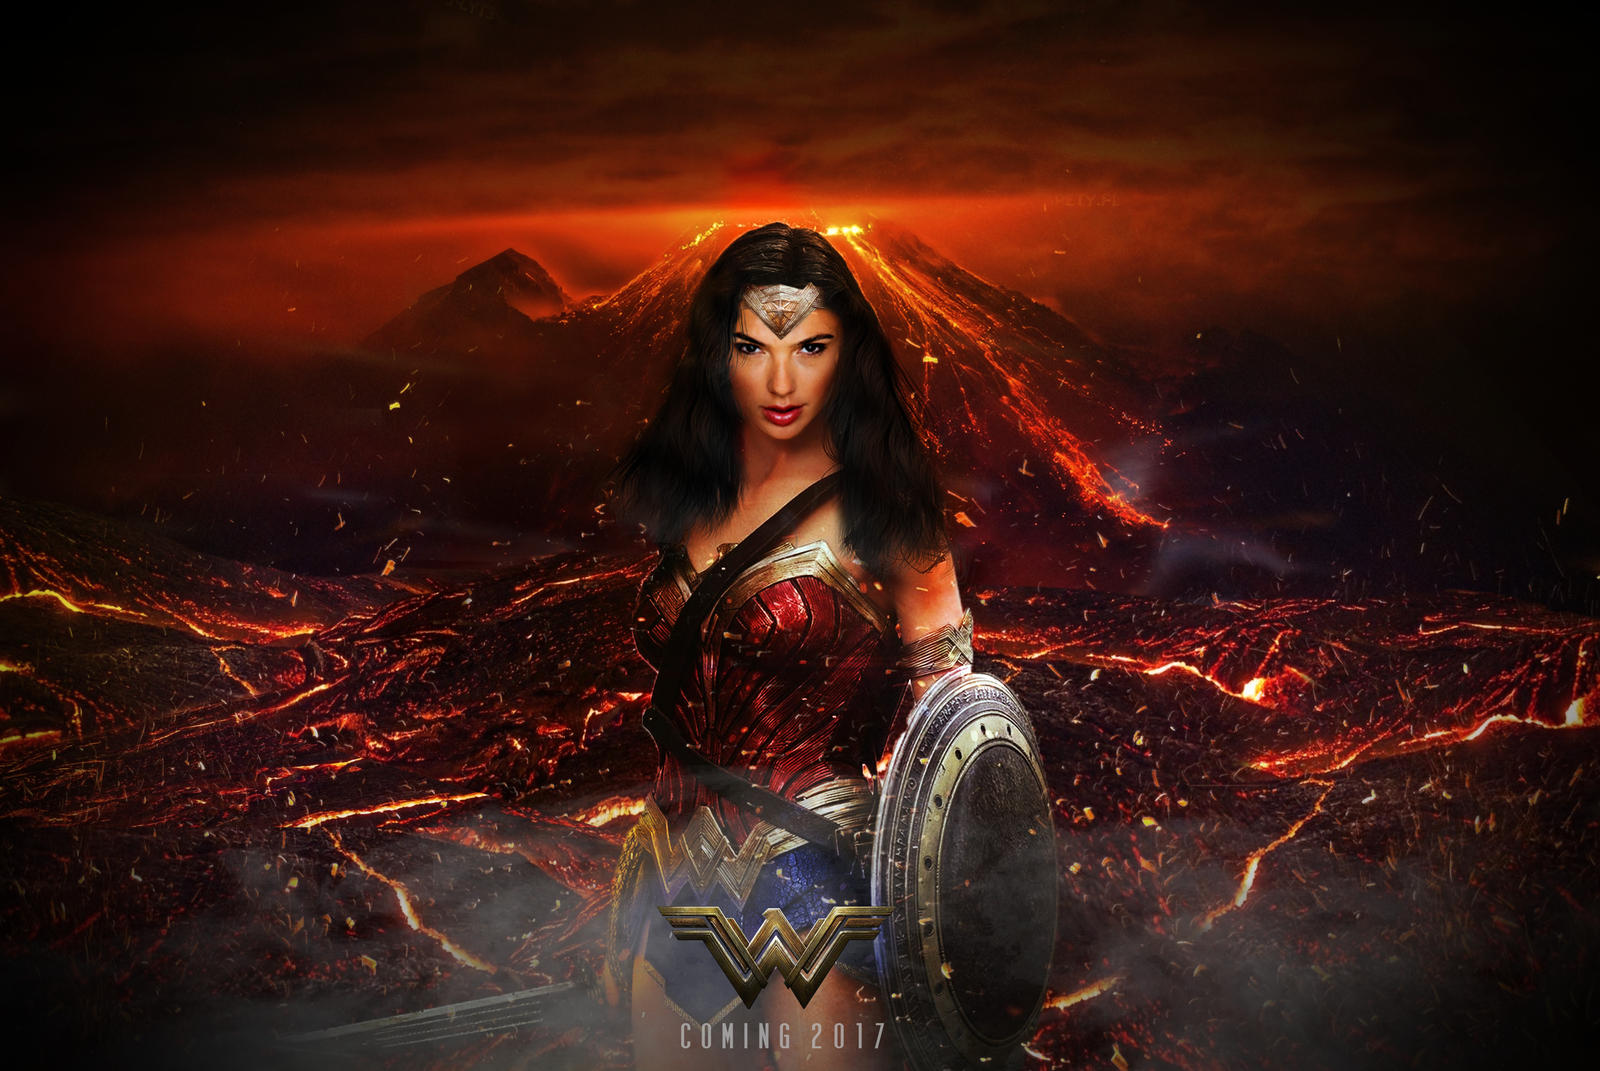 Wallpaper Wonder Woman 2017 Movies 6723: Wonder Woman (2017) Teaser Poster By Cameronrobertson On